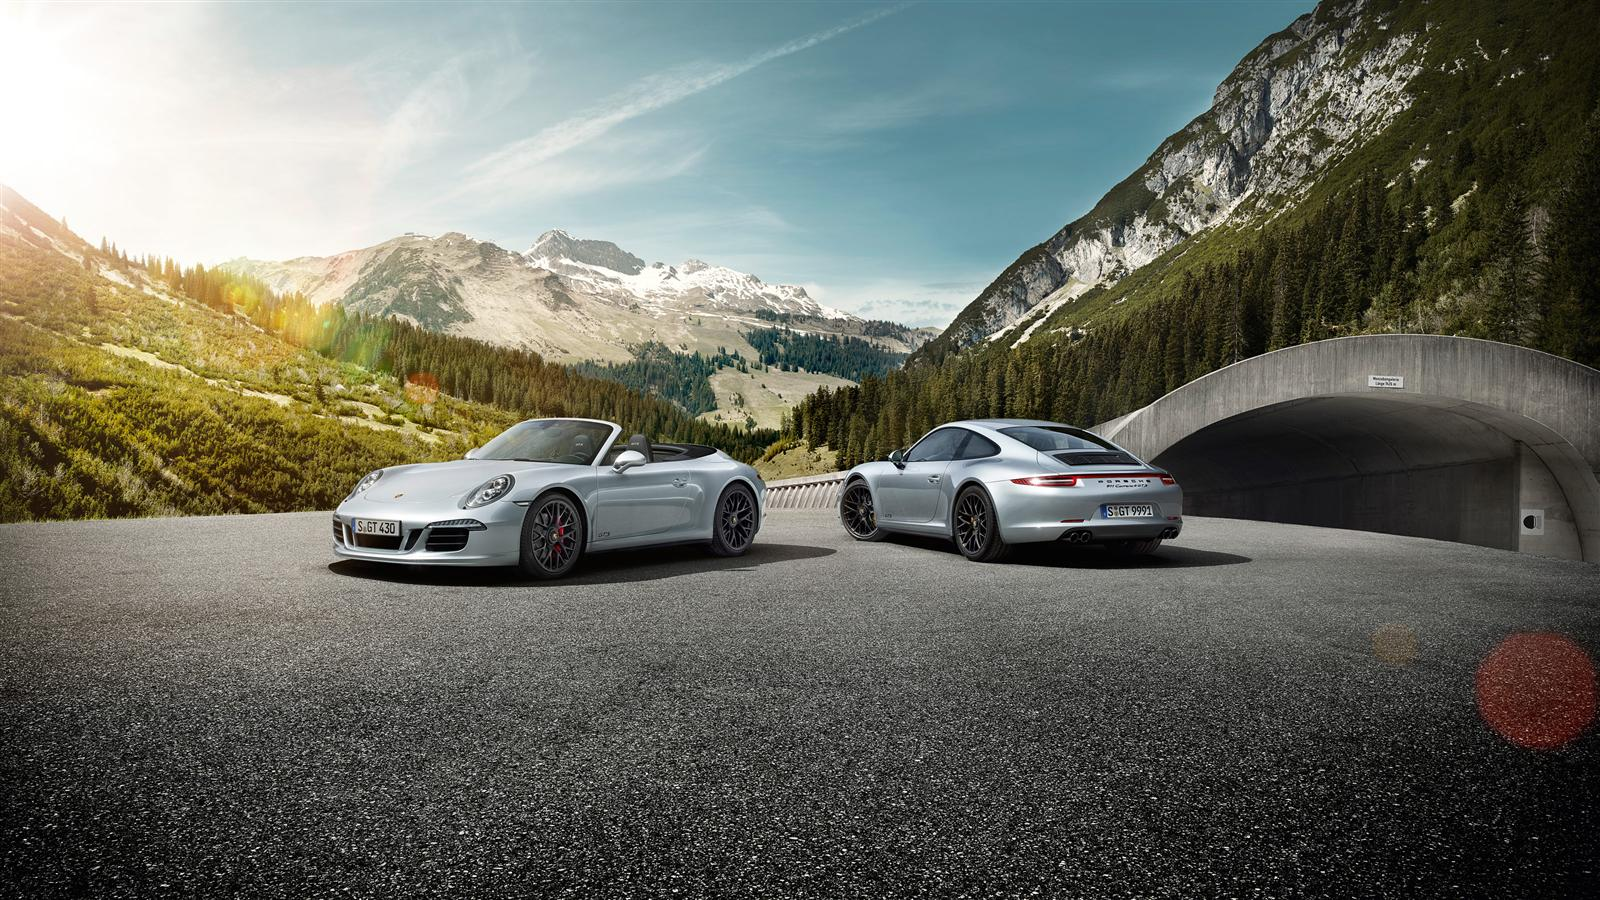 Good 3d Wallpapers For Desktop Porsche 911 Carrera 4 Gts Cabriolet Specs Amp Photos 2014